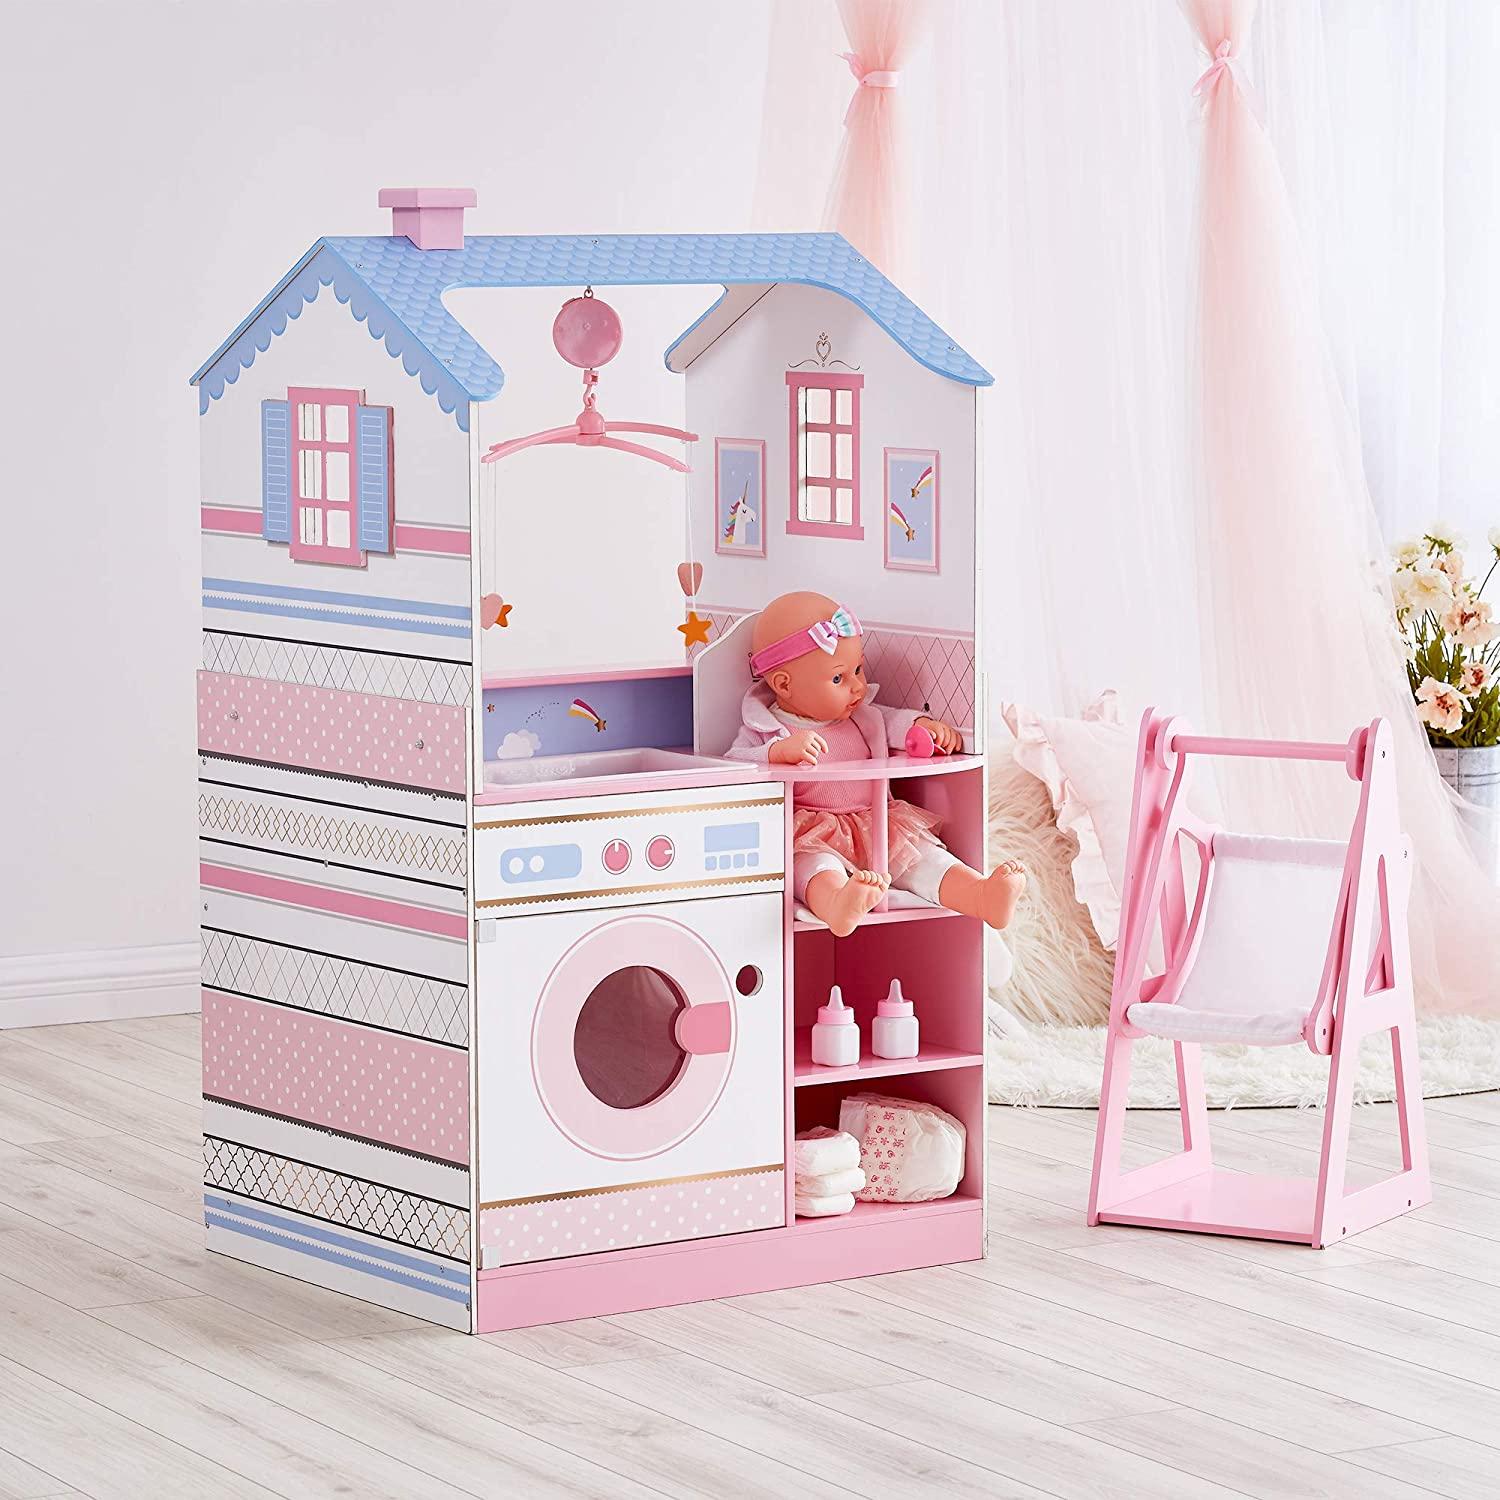 Olivia's Little World - All in One 16-18 inch Baby Doll Wooden Nursery Center - Double Sided Dollhouse for Baby Dolls with Swings - Multi- Functional Changing Station, Unicorn White/Pink/Blue